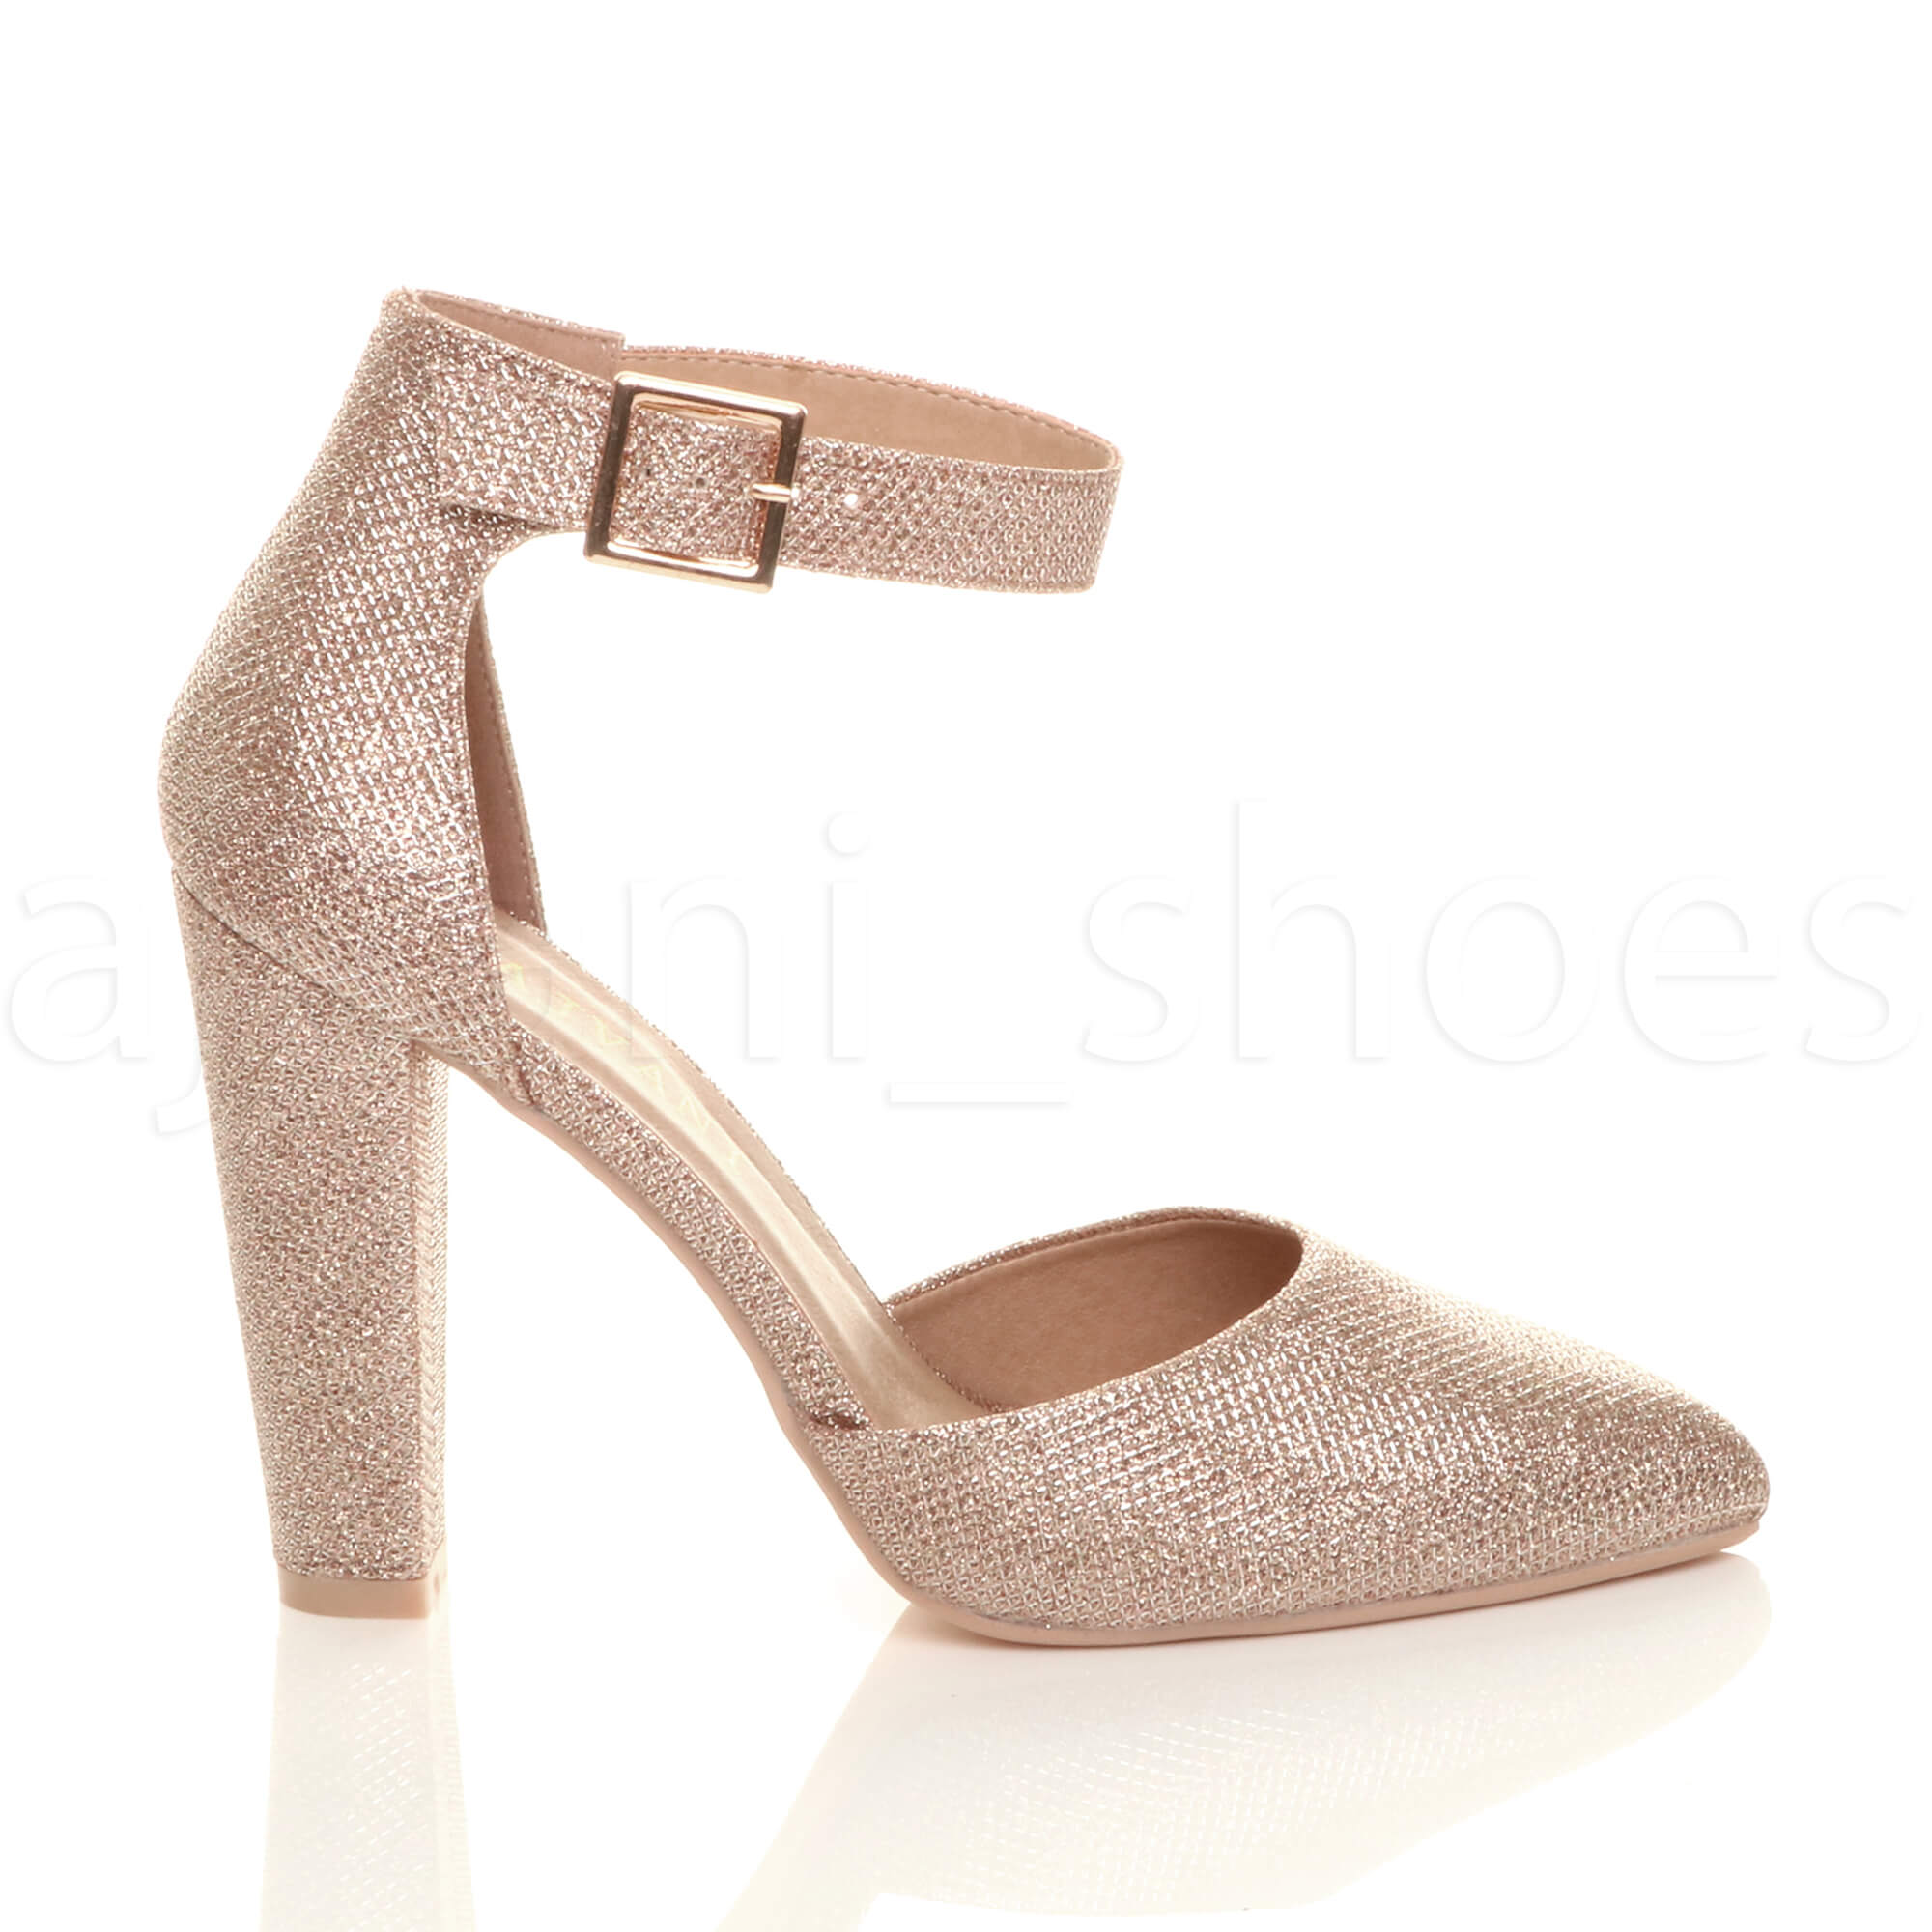 WOMENS-LADIES-HIGH-BLOCK-HEEL-ANKLE-STRAP-BUCKLE-POINTED-COURT-SHOES-SIZE thumbnail 150